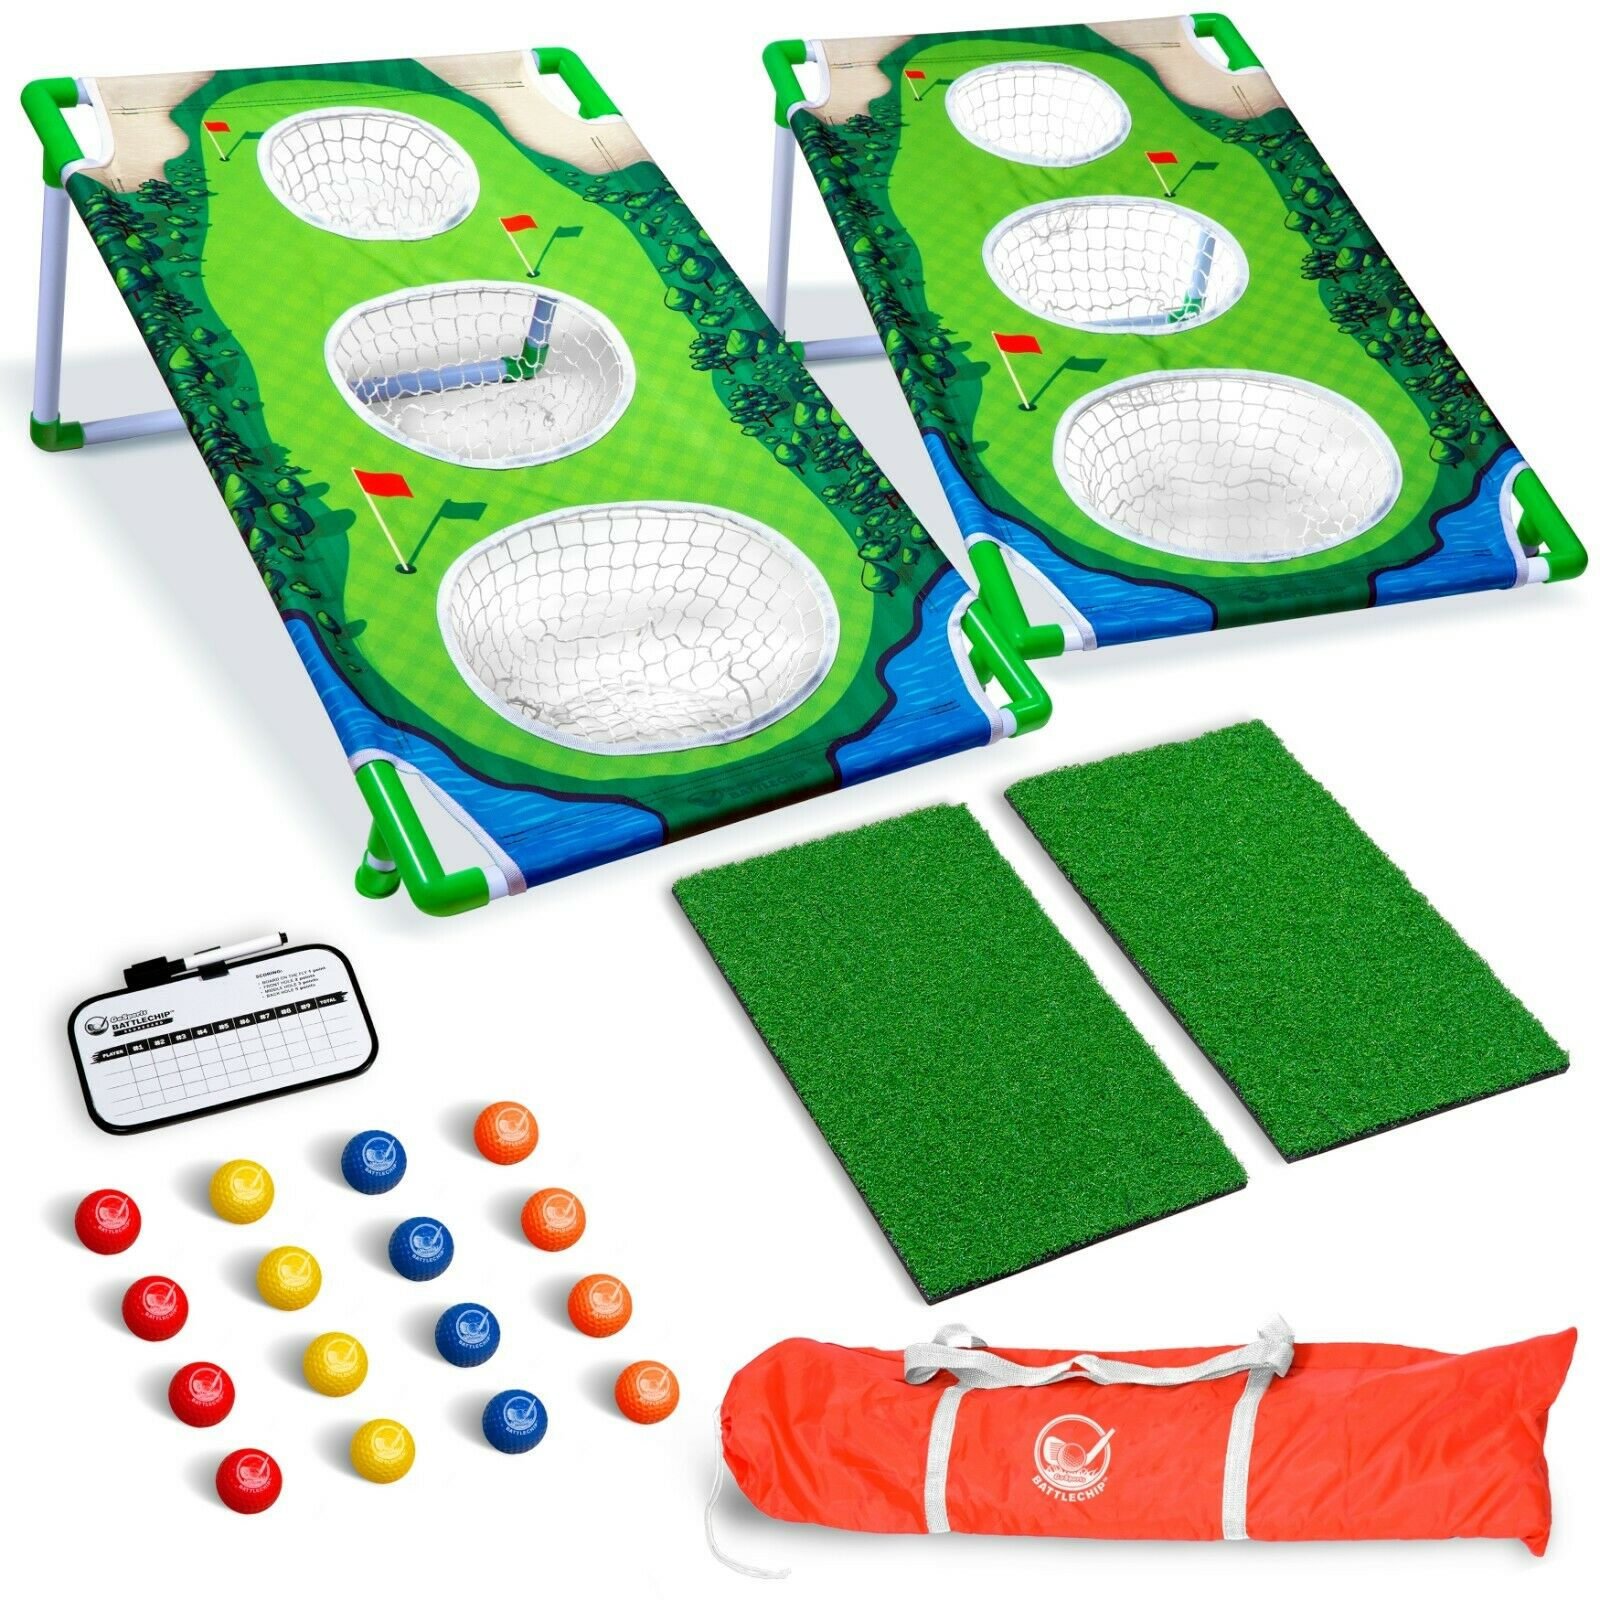 2020 Deluxe Backyard Golf Cornhole Game Set (2 Boards, 2 Mats & 16 Balls) - The Golfing Eagles